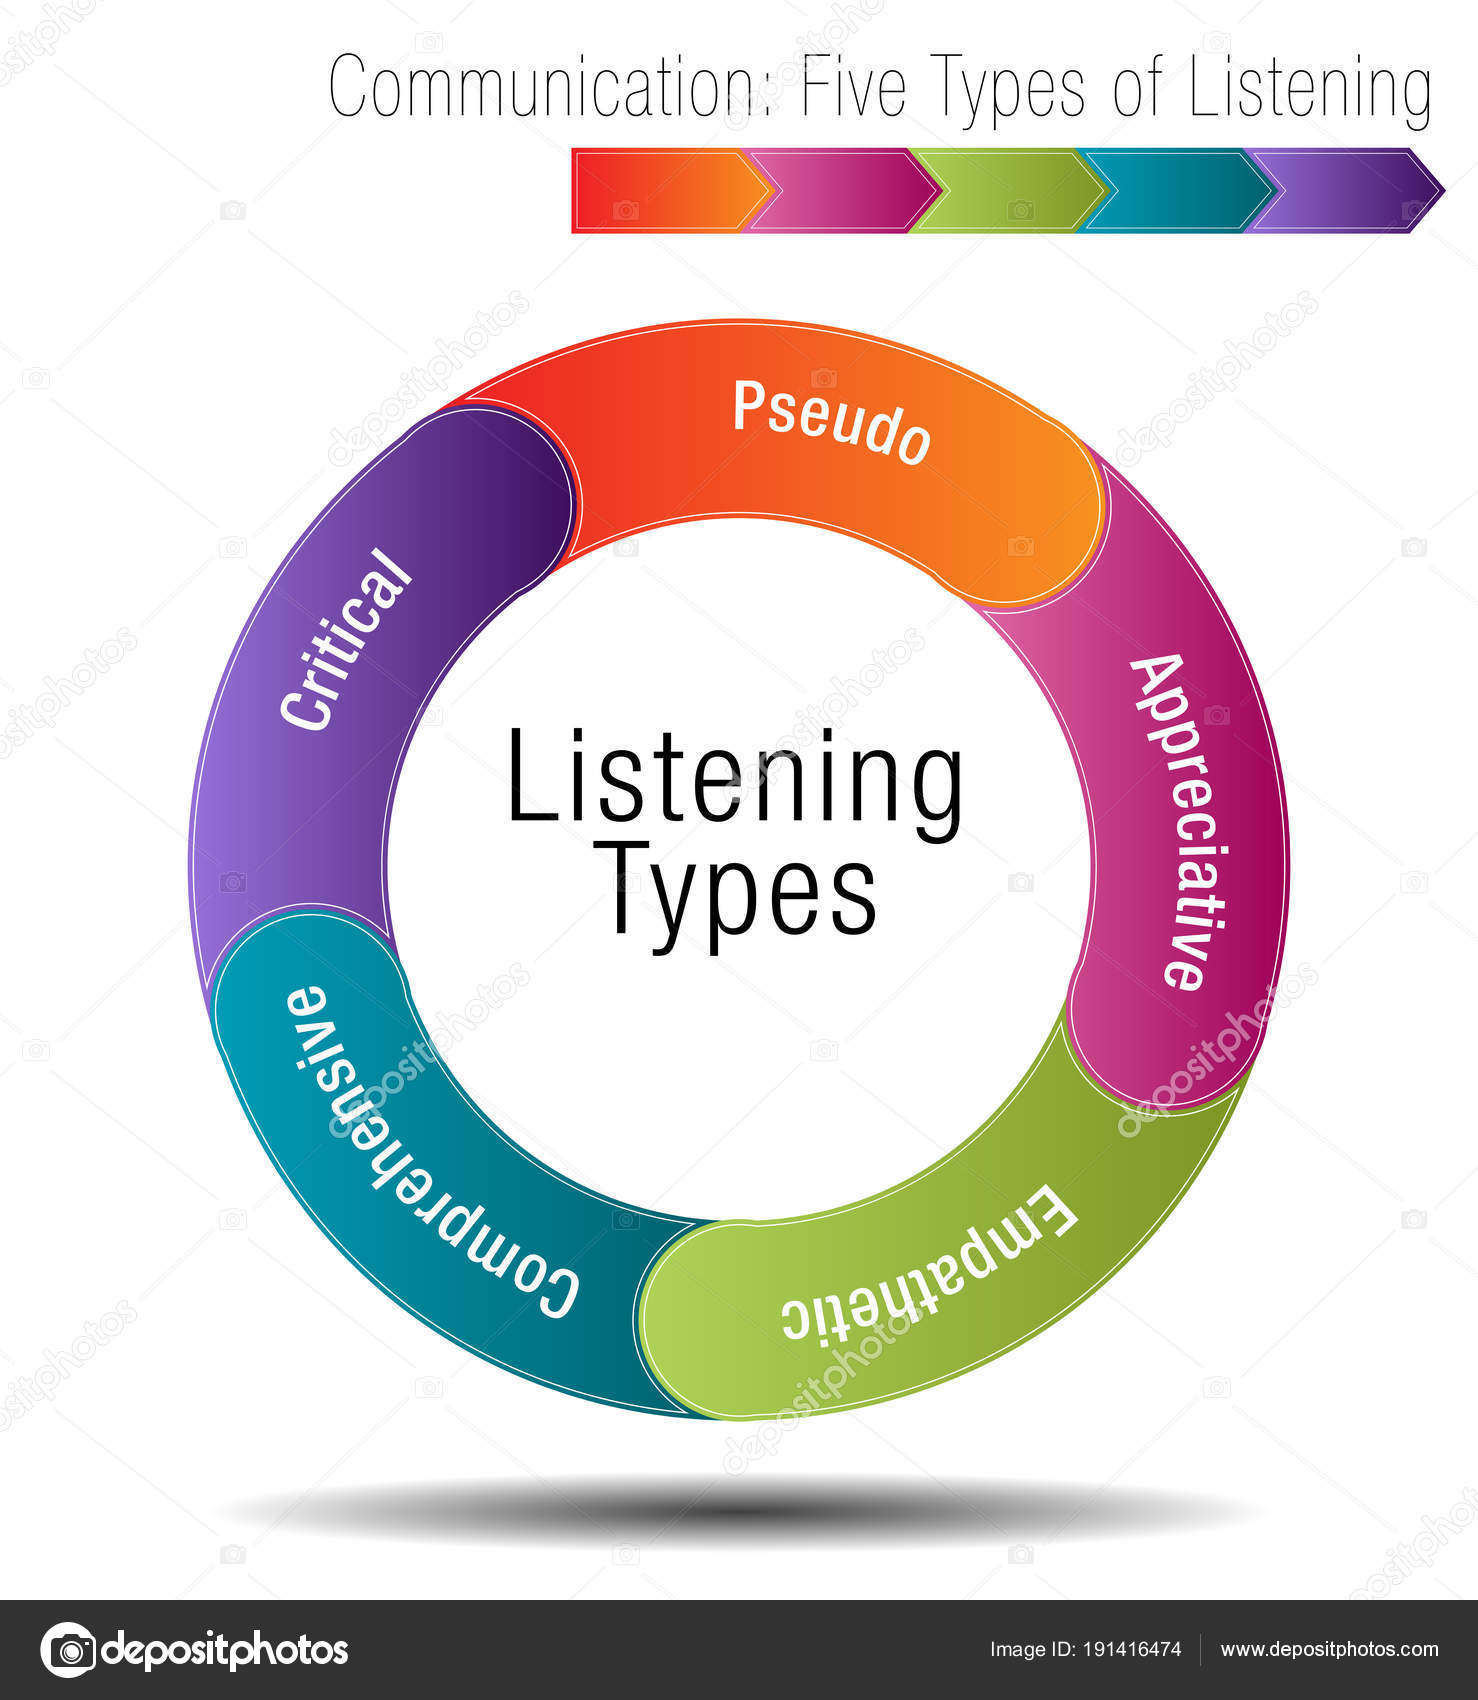 Communication Five Types of Listening — Stock Vector